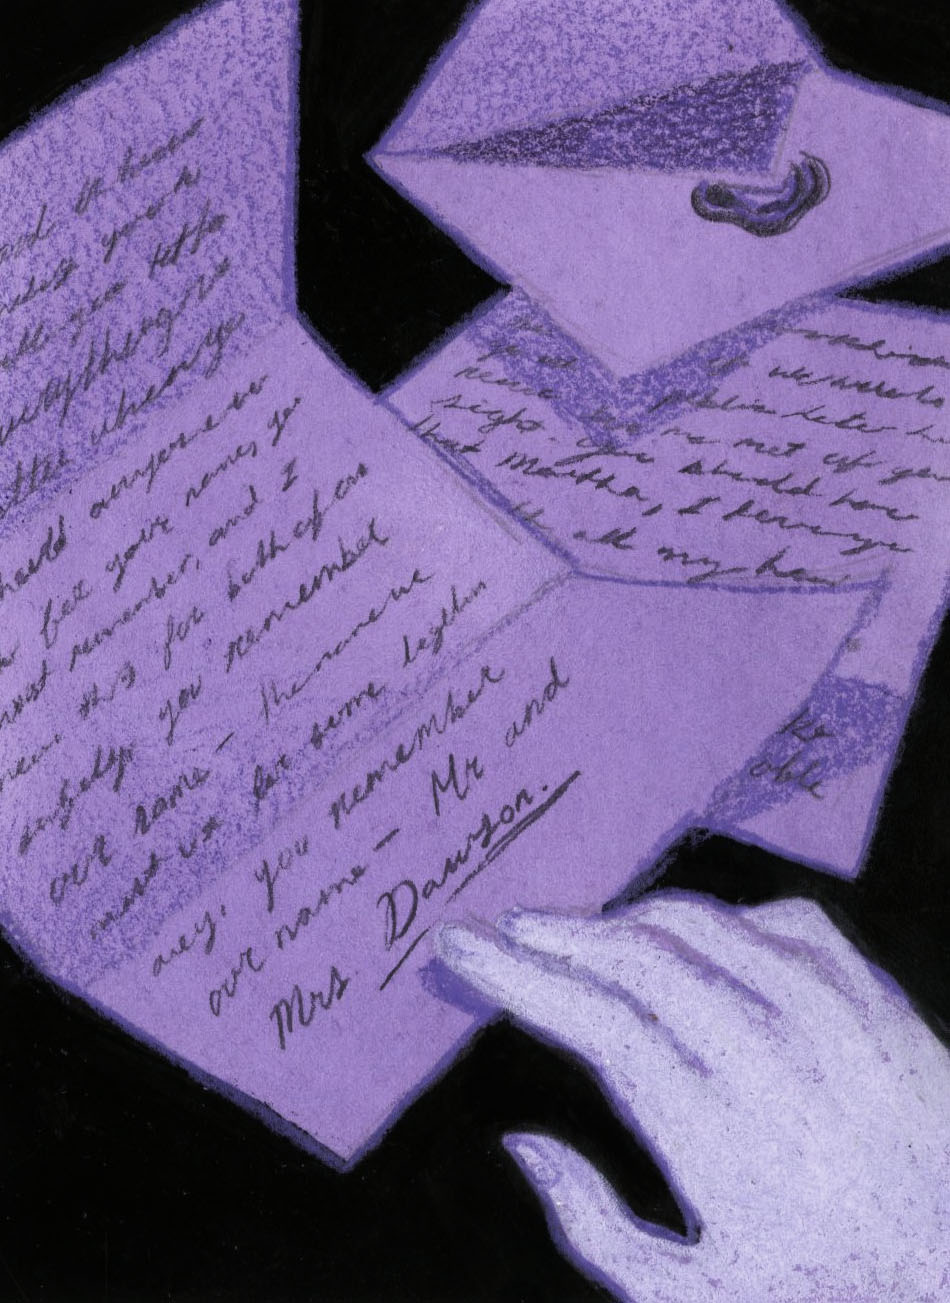 This Novelist's Female Heroes and Brazen Polyamory Shocked